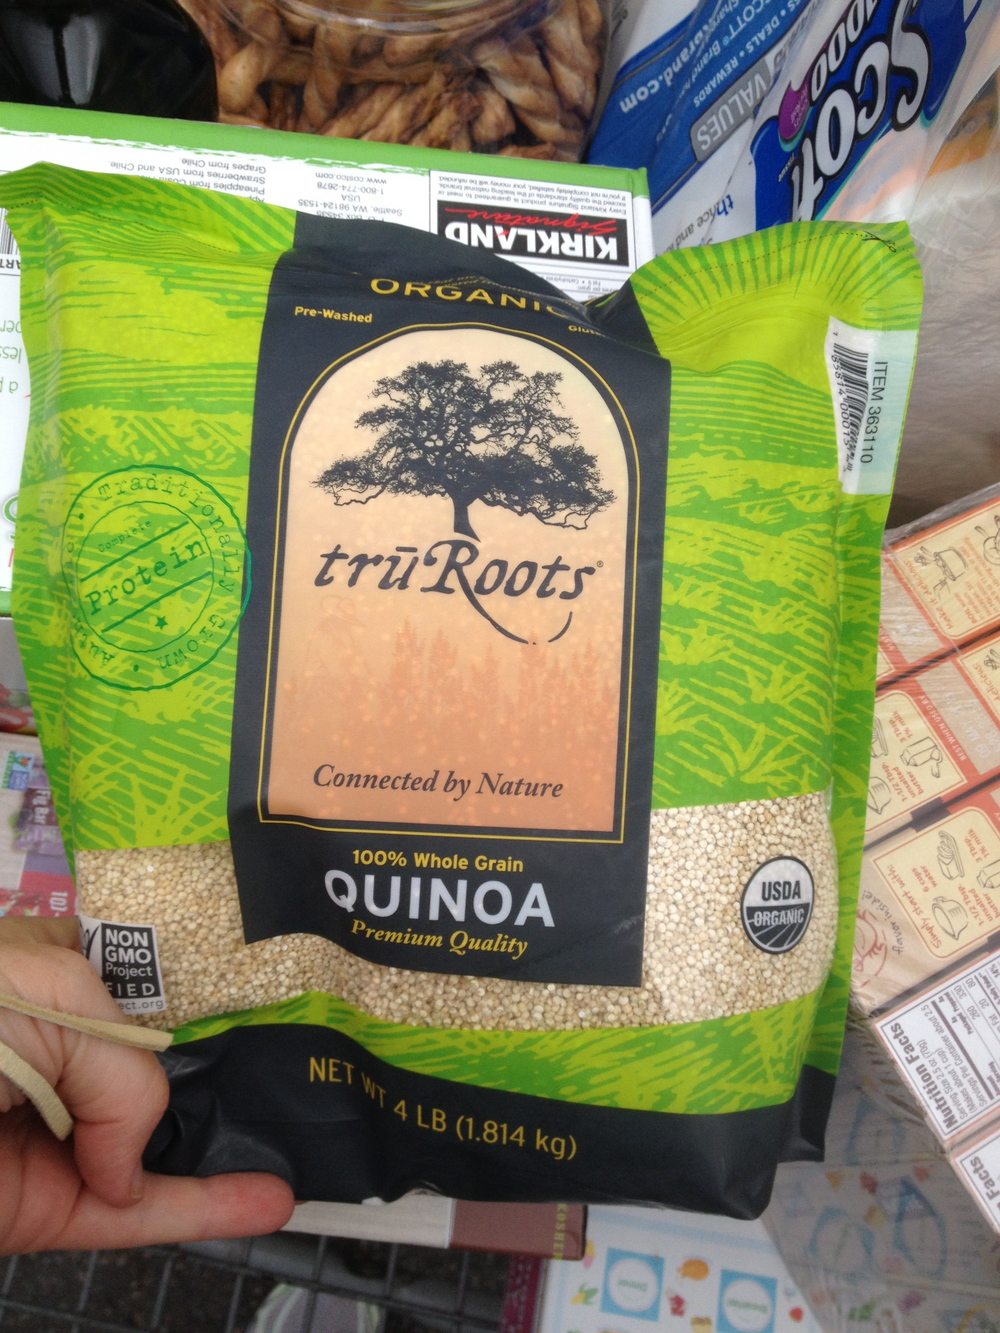 Money saving tip: Check out costco to get items like this in bulk. Quinoa can be VERY expensive, but it's a great healthy grain you can add to salads, soups or as a side dish on its own. If I'm going to make it as a side dish I usually cook it in veggie broth to give it some flavor.